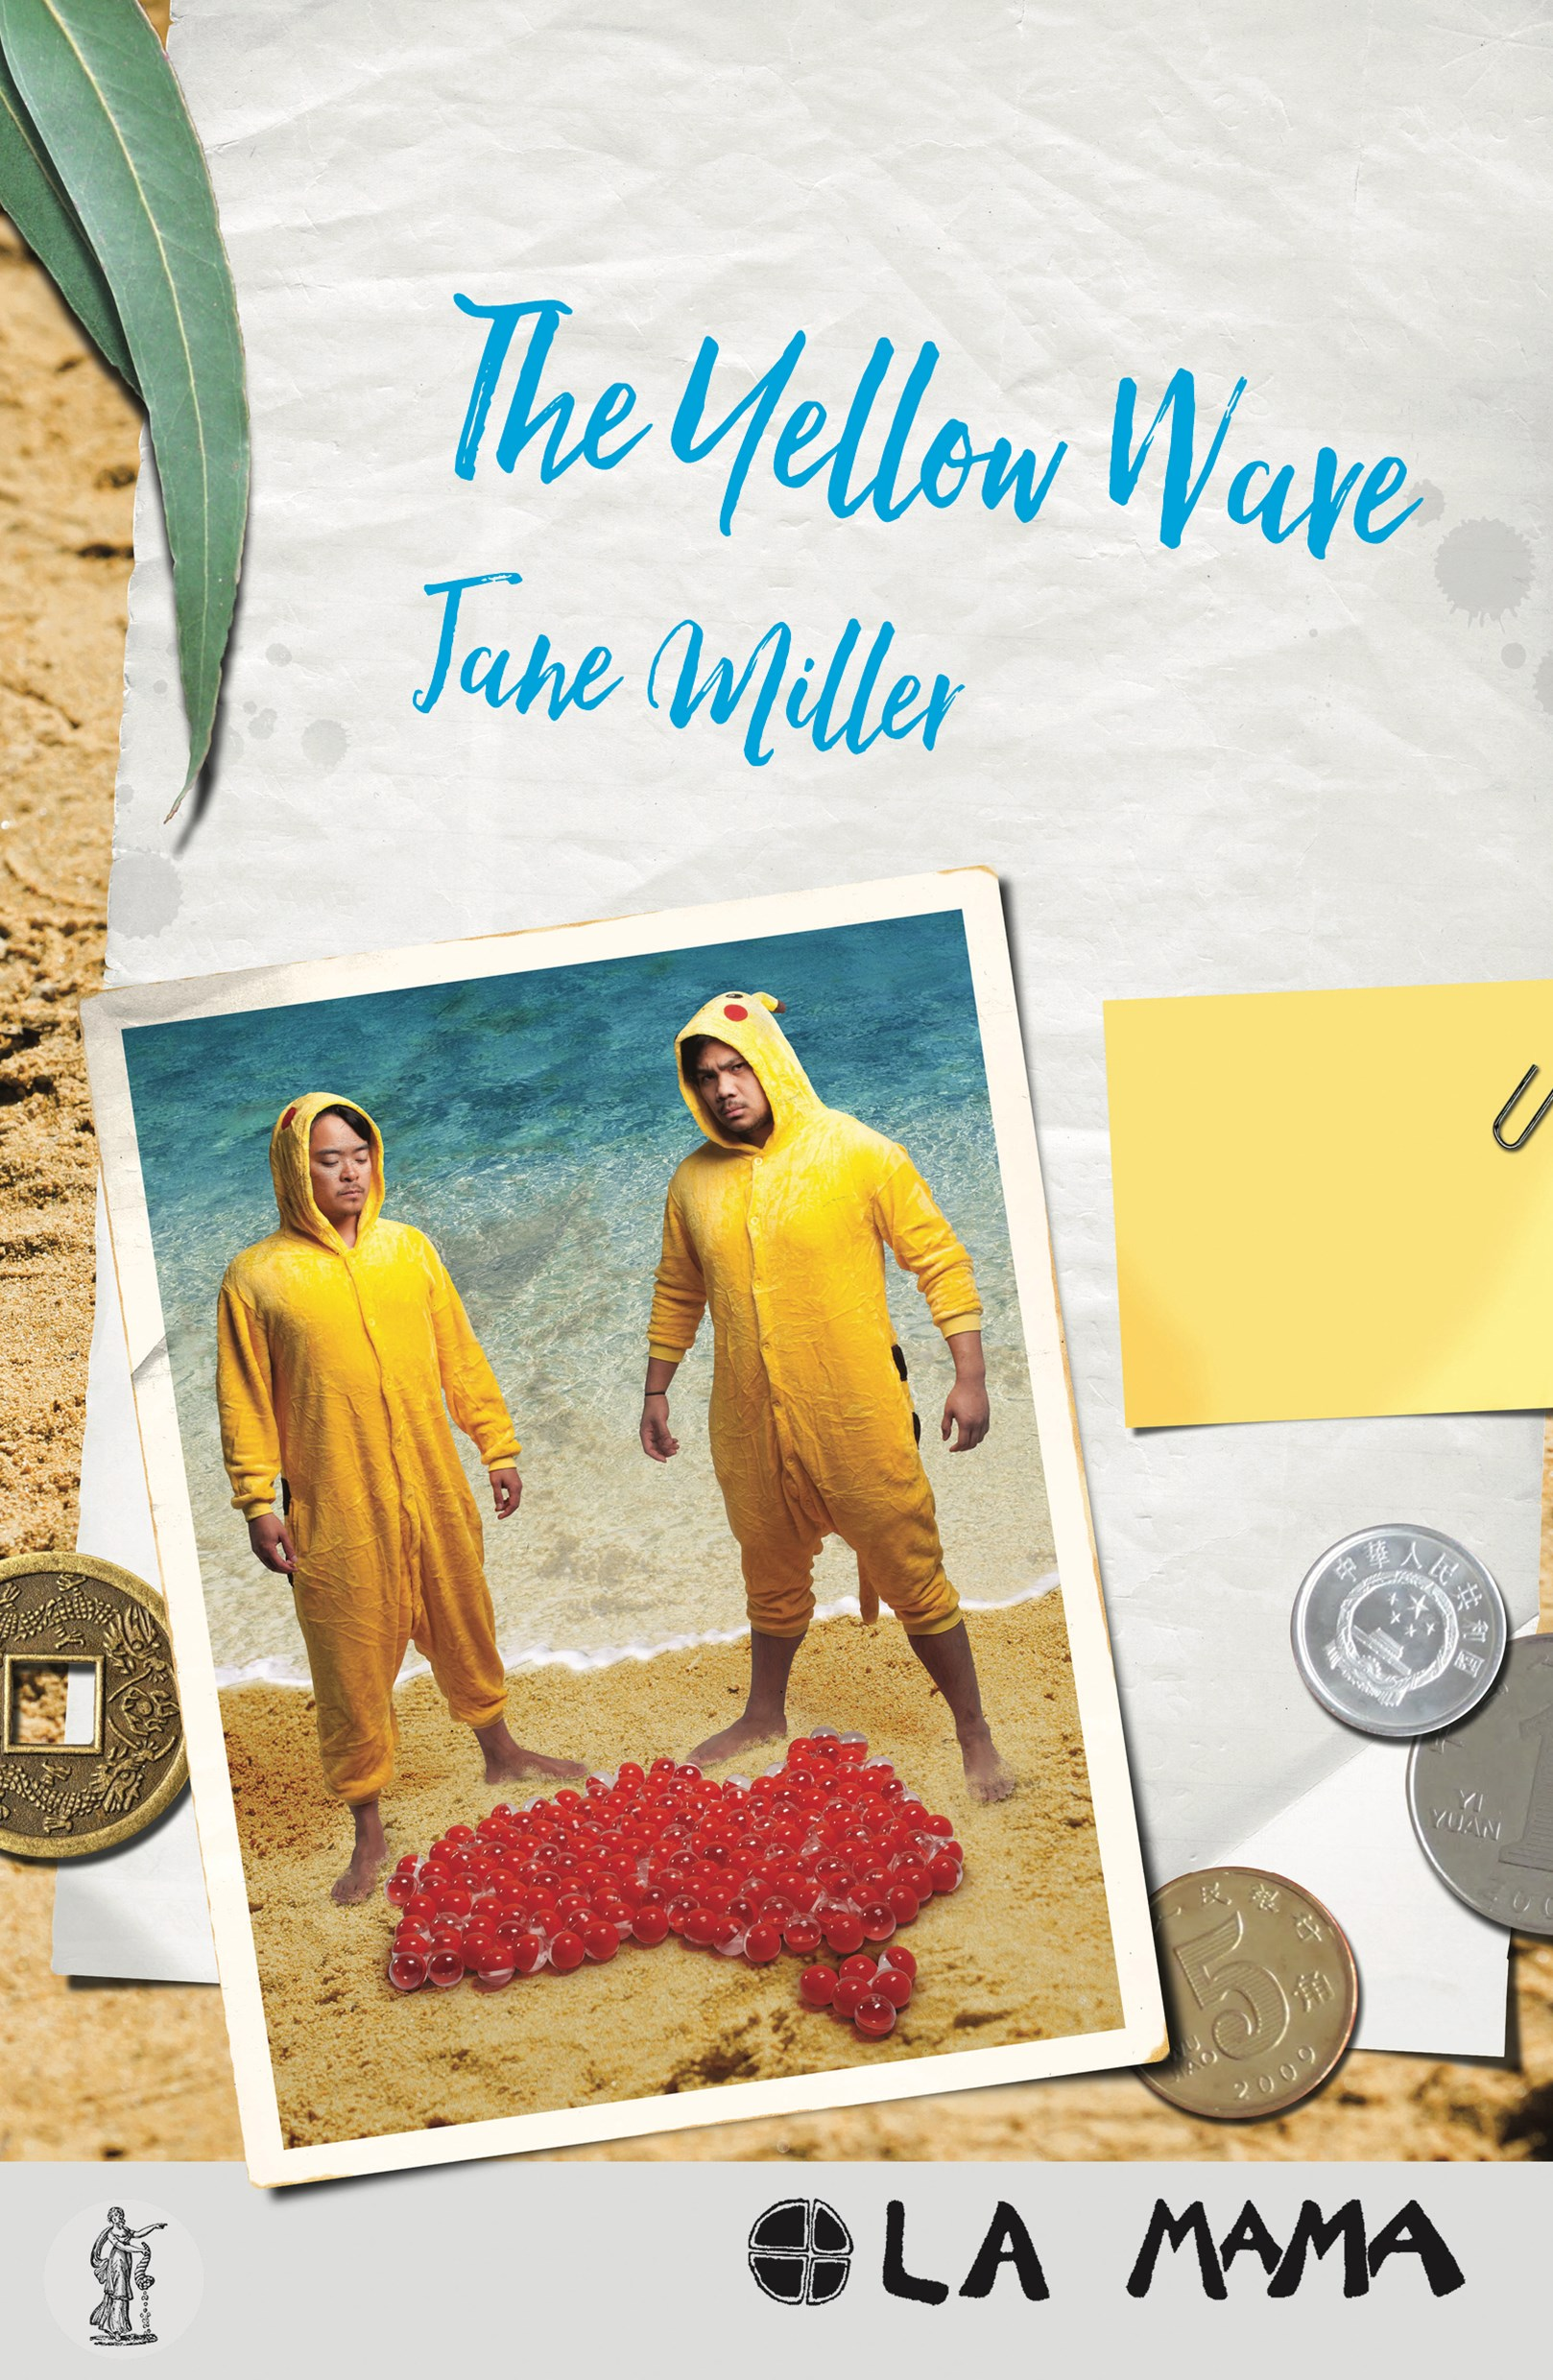 The Yellow Wave